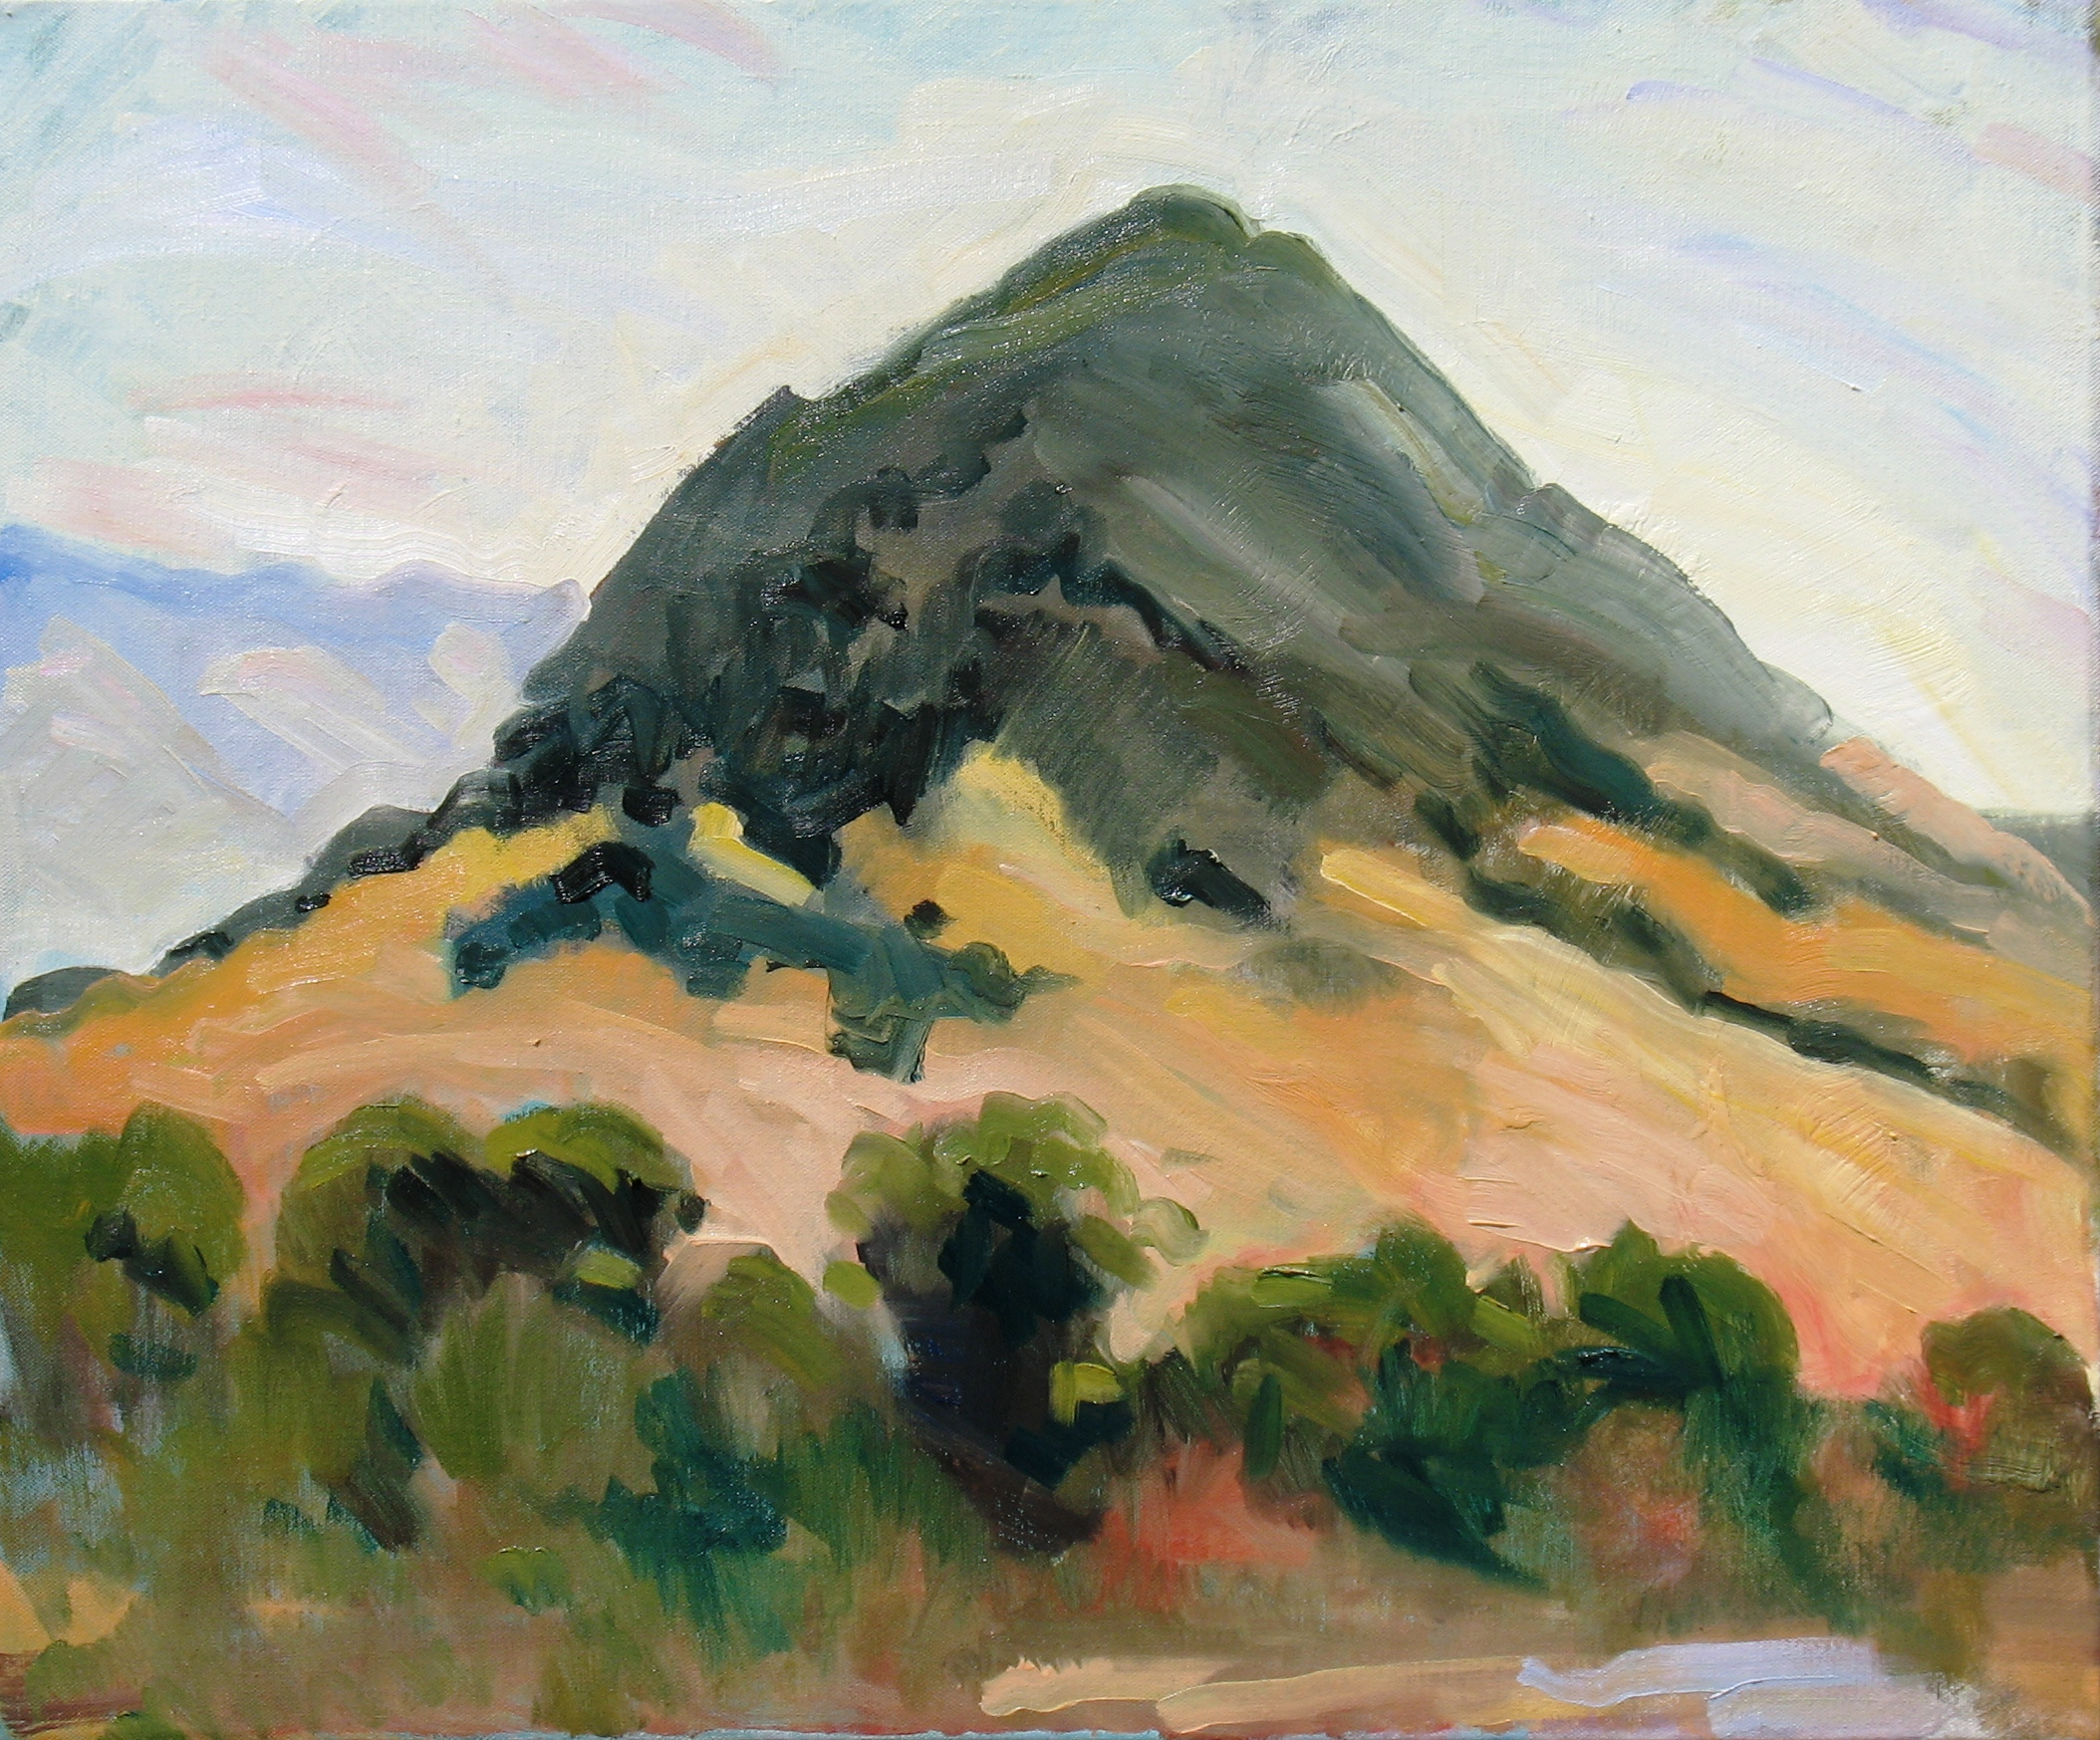 Cerro San Luis or Madonna Mountain, 20 x 24 inches, oil on canvas, 201